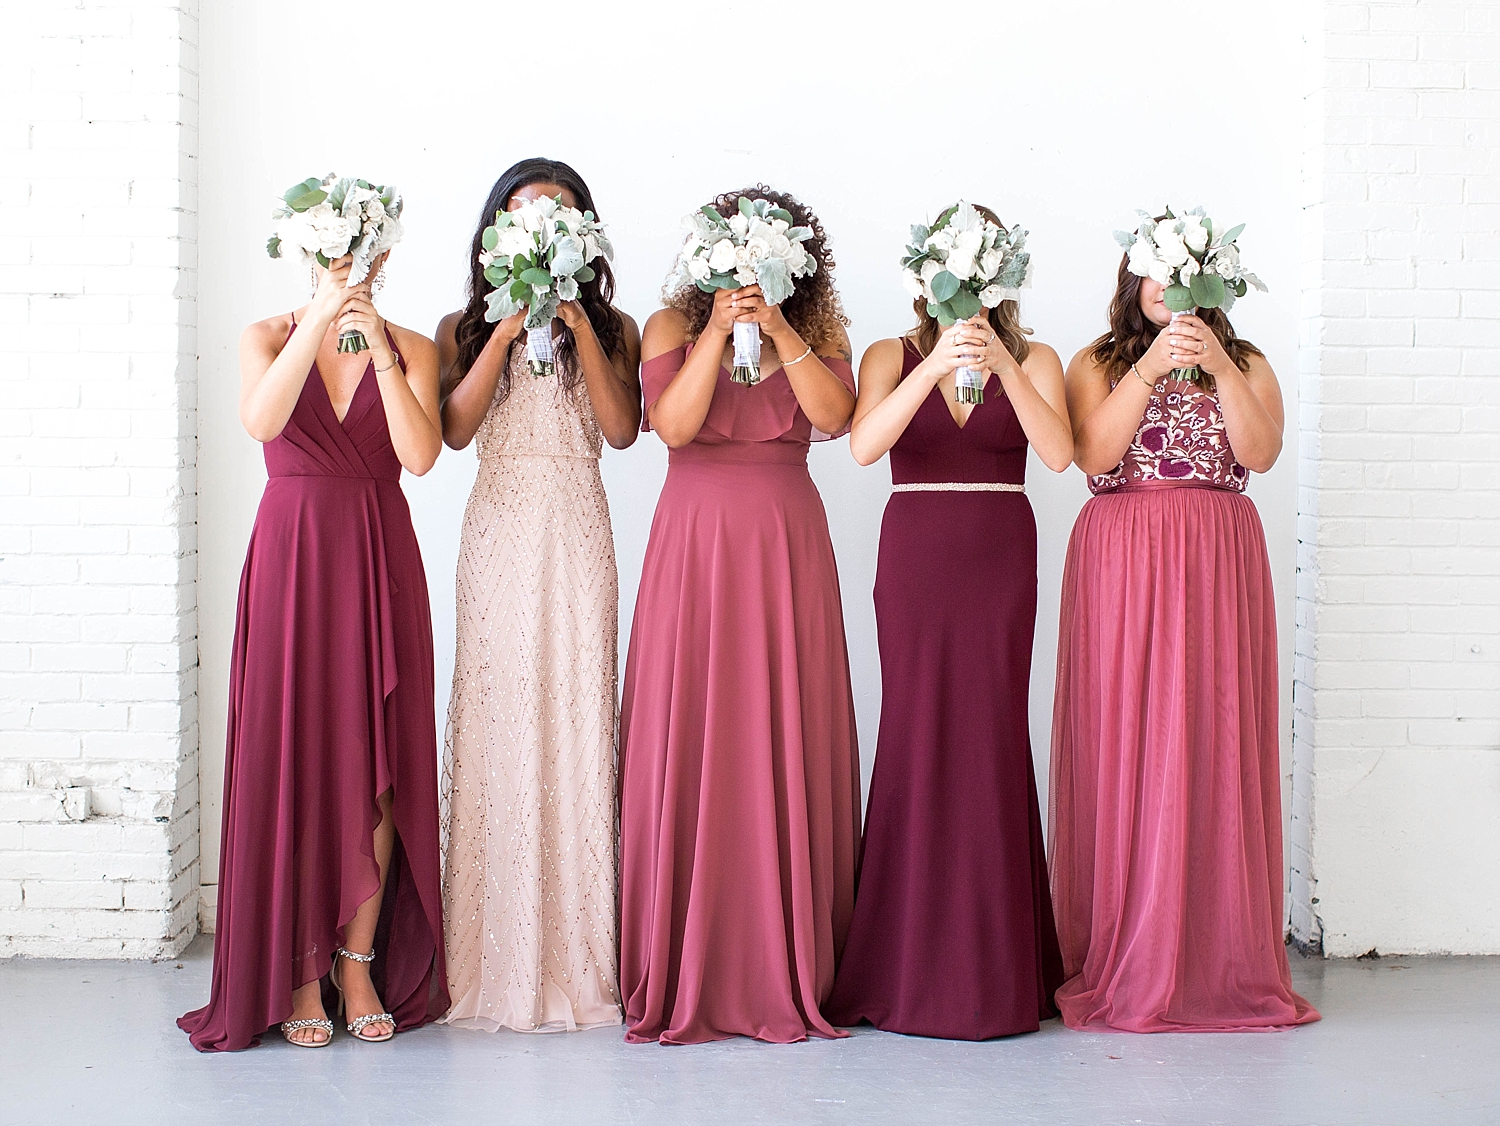 BHLDN Bridesmaids Dresses Campaign Philadelphia New Jersey Wedding Fashion Photography by Kelee Bovelle_0008.jpg